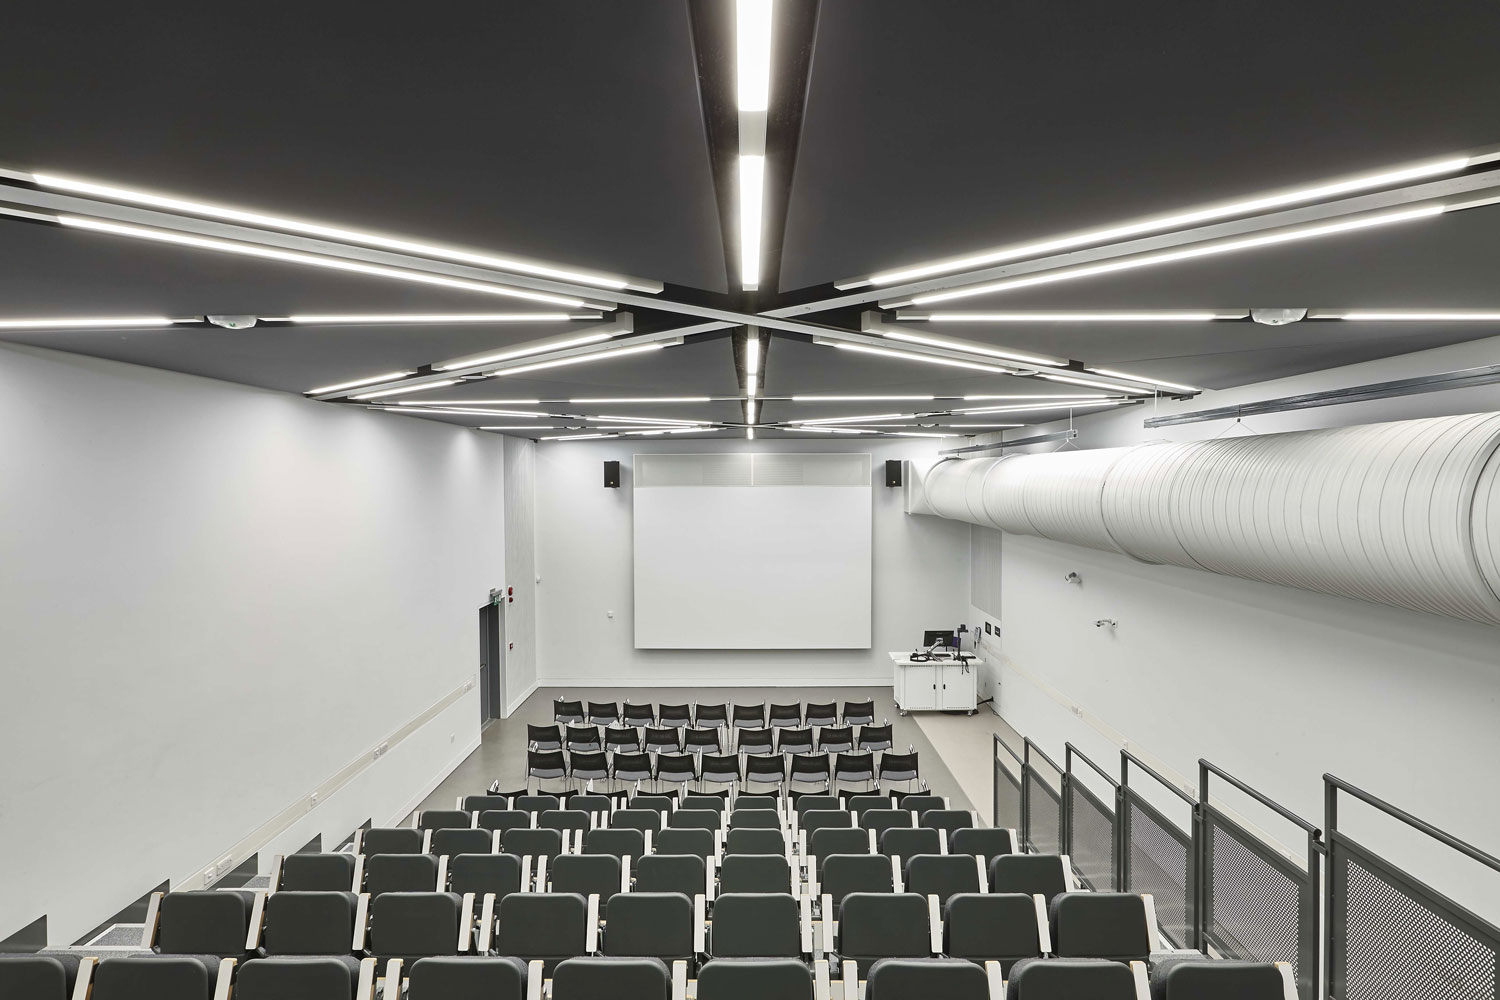 School of Art Lecture Theatre, Southampton University, Winchester   Construction Installation Photography   Interior Photography